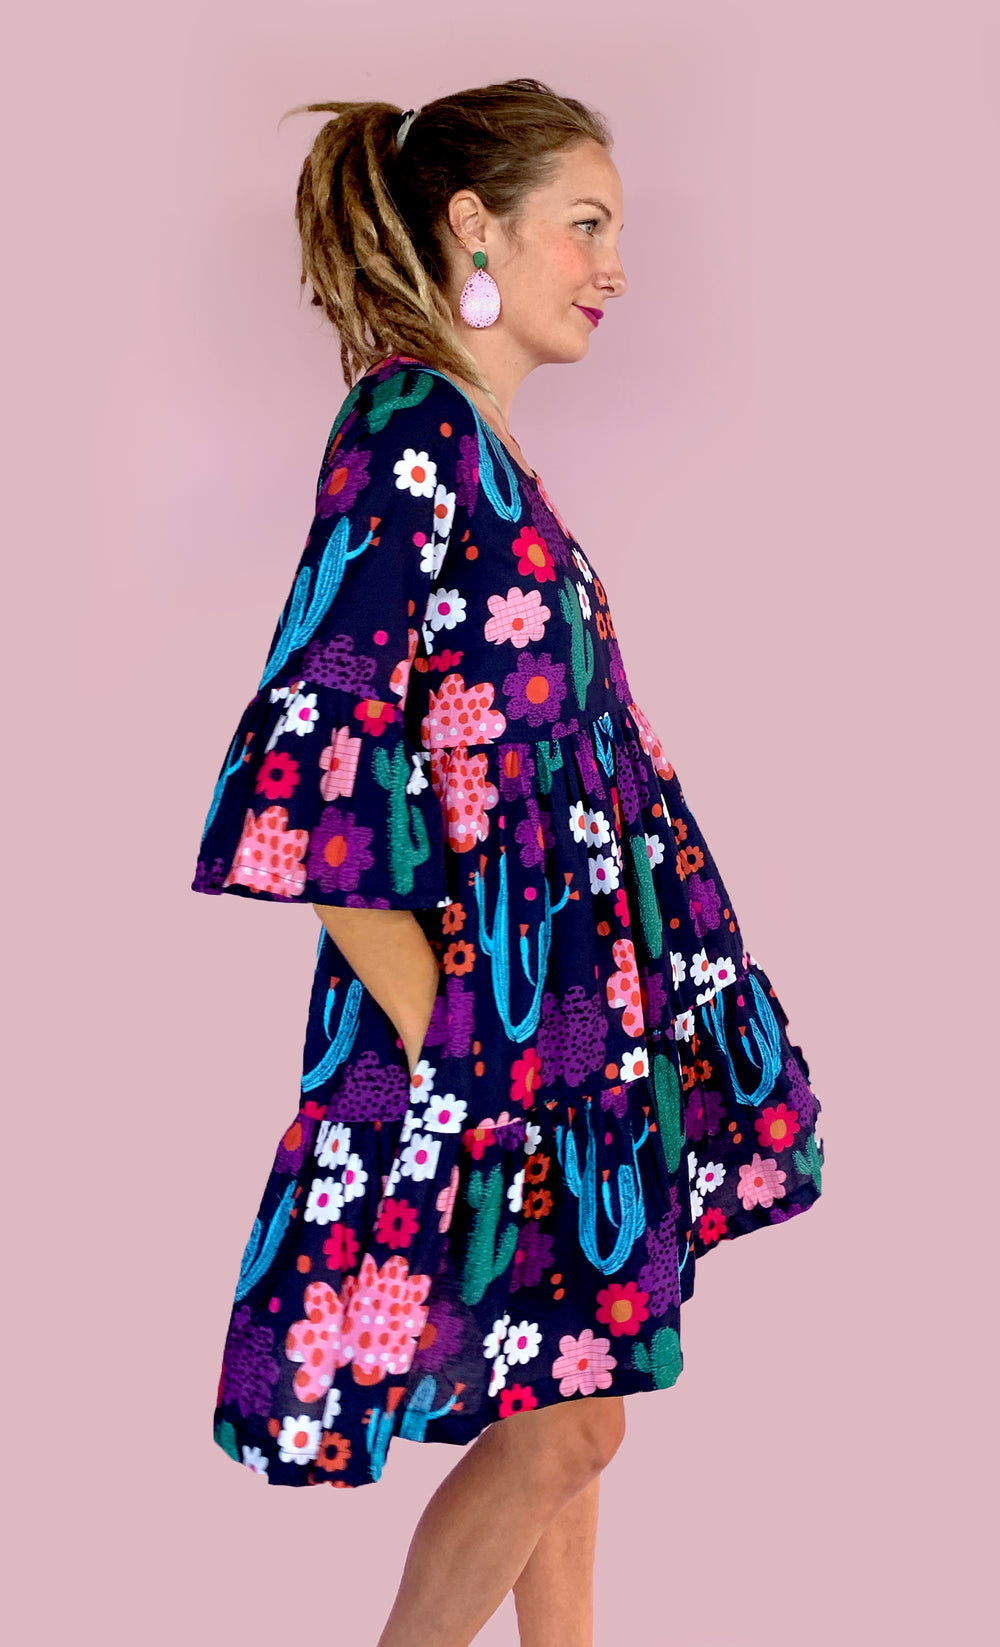 Bloom dress 100% cotton (2 styles. Swipe to see images of option 2)